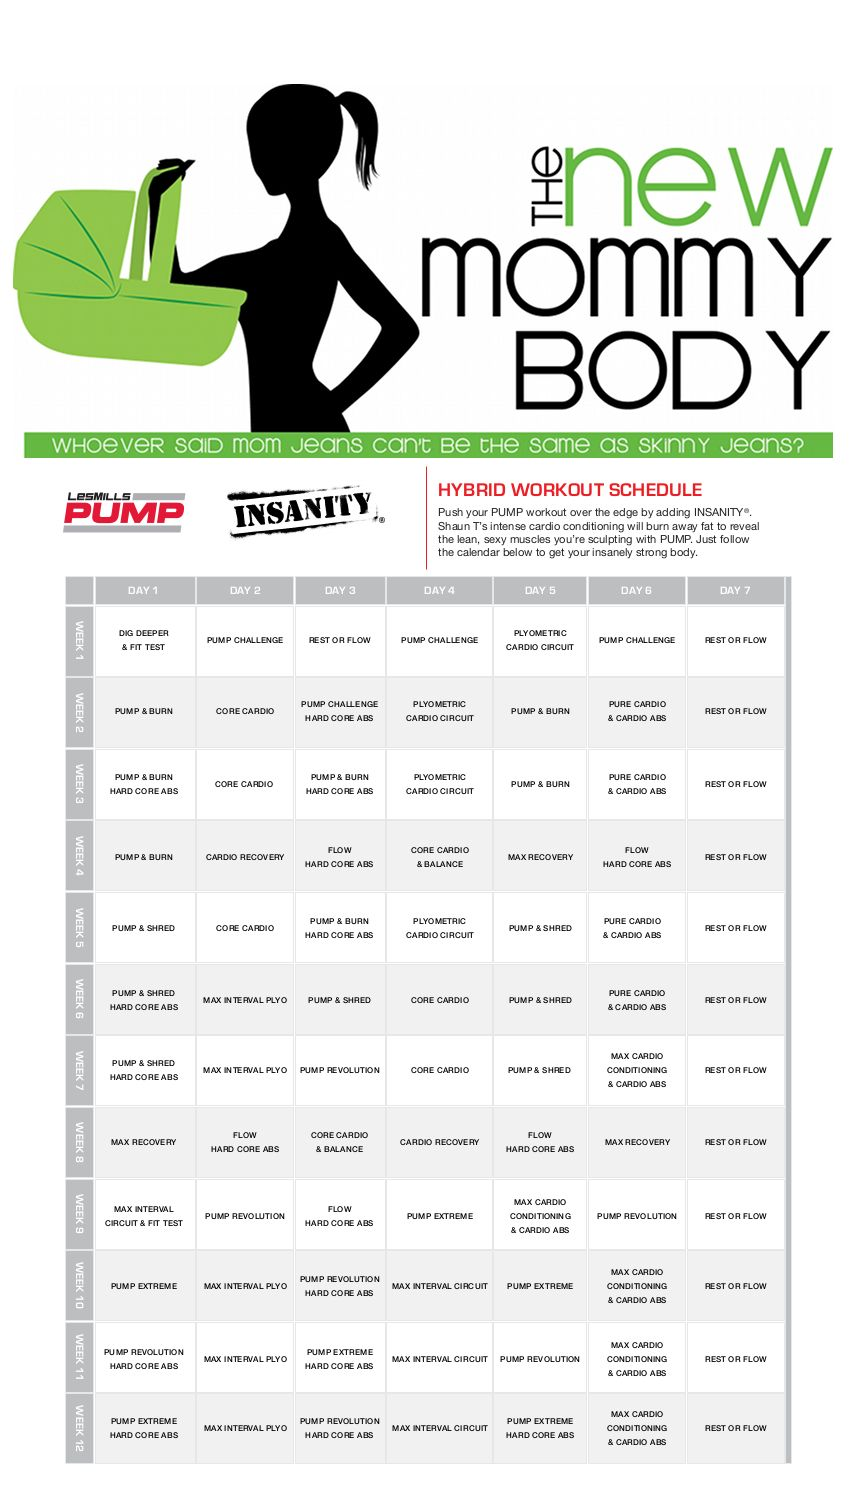 Worksheets Beachbody Worksheets new mommy body les mills pump and shaun t insanity beachbody hybrid workout calendar